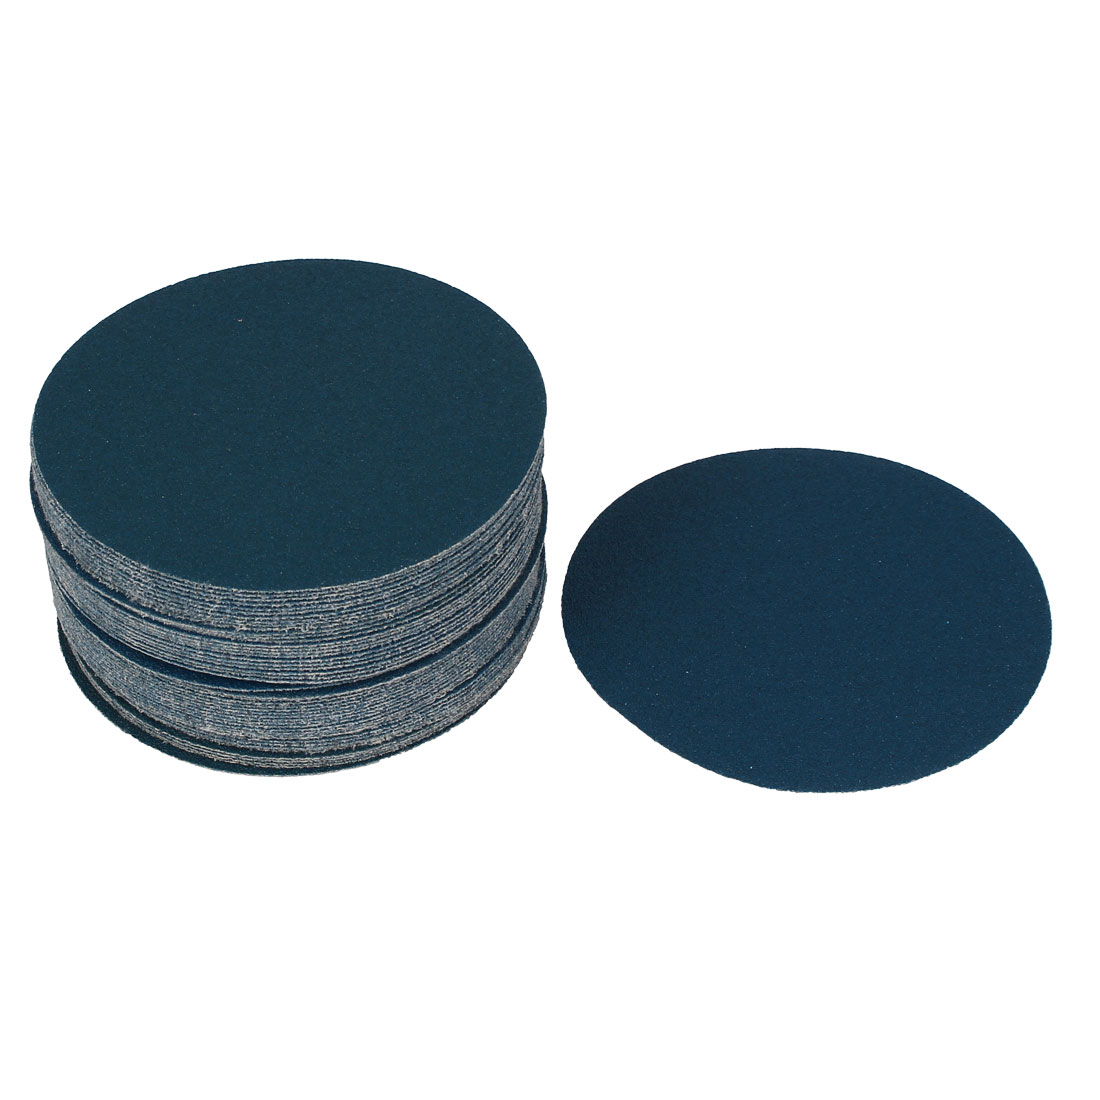 "5"" Sandpaper Auto Car Paint Polishing Sanding Disc Hook and Loop Fastener 80 Grit 50pcs"